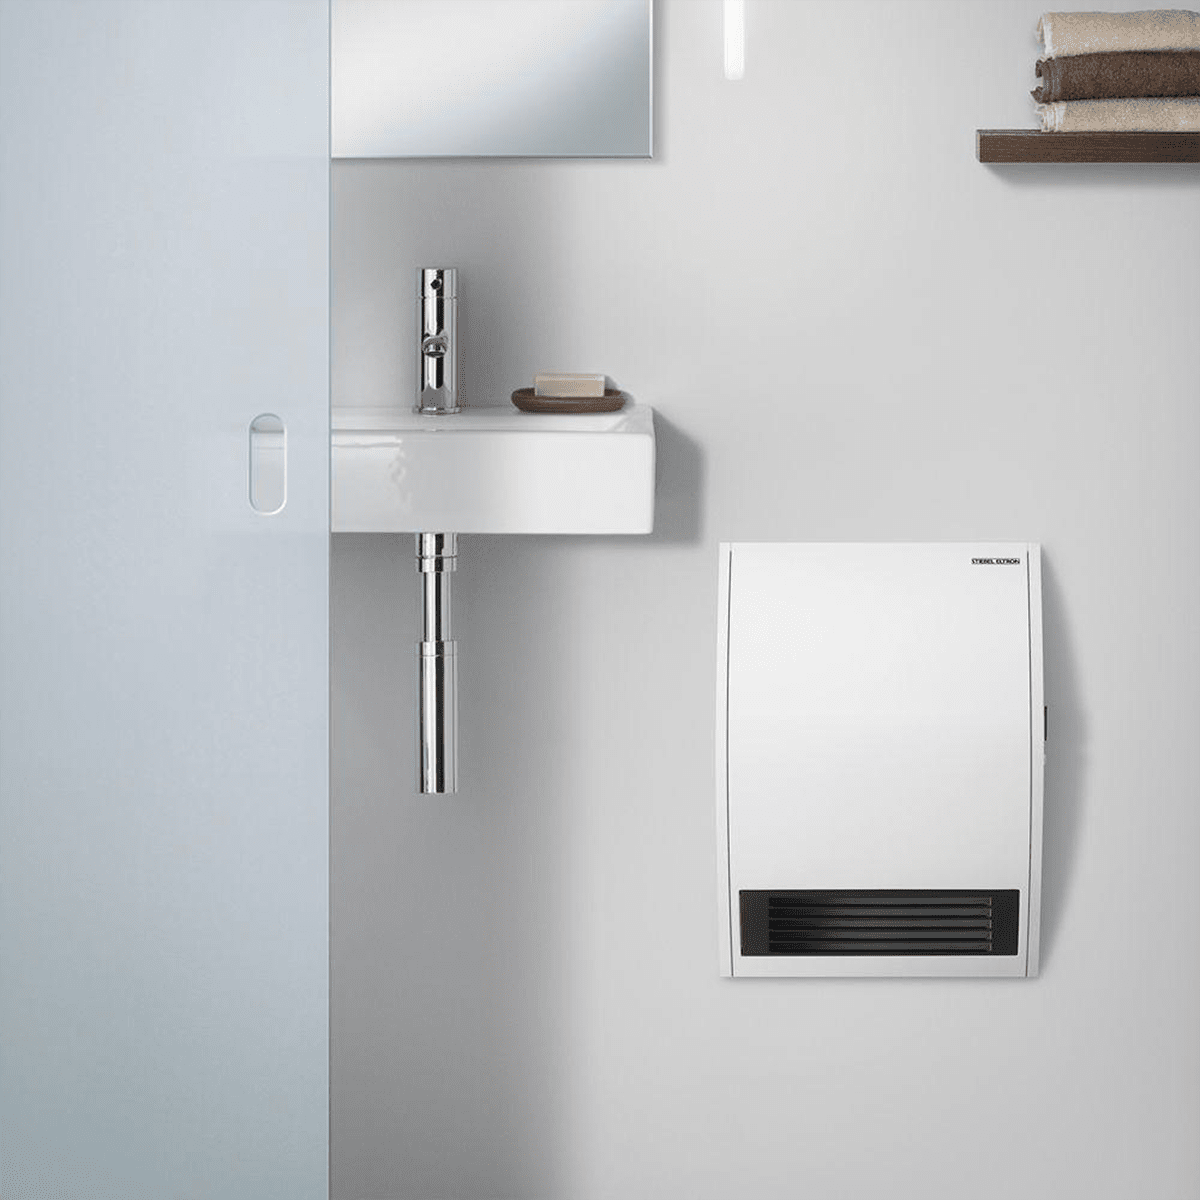 If You're Looking To Save Space Indoors, Consider Wiring One Of Their Wall  Heaters In Your Rental Space Or Home